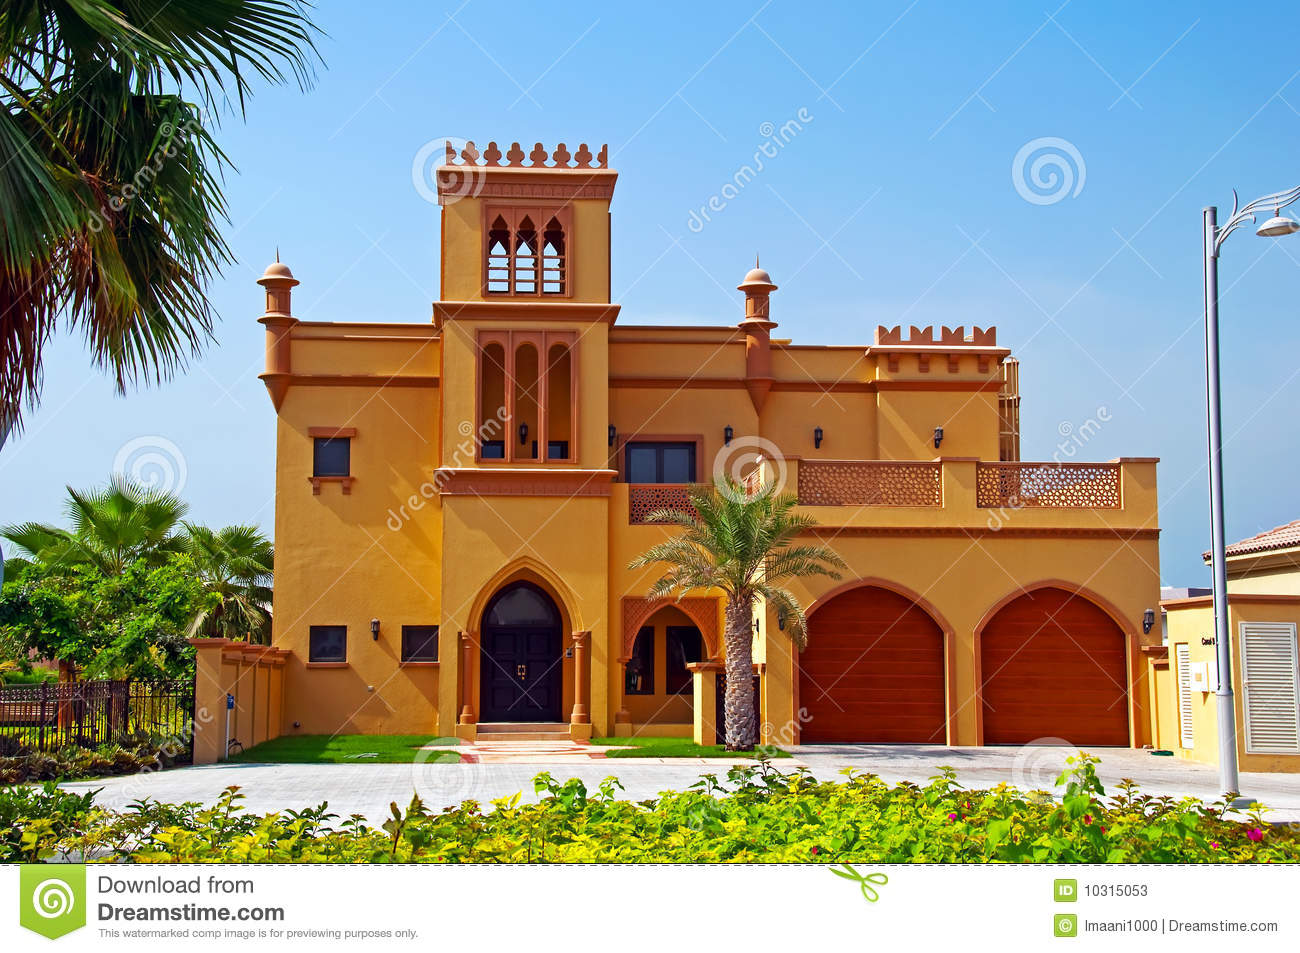 Villa arabe photos stock image 10315053 for Architecture arabe